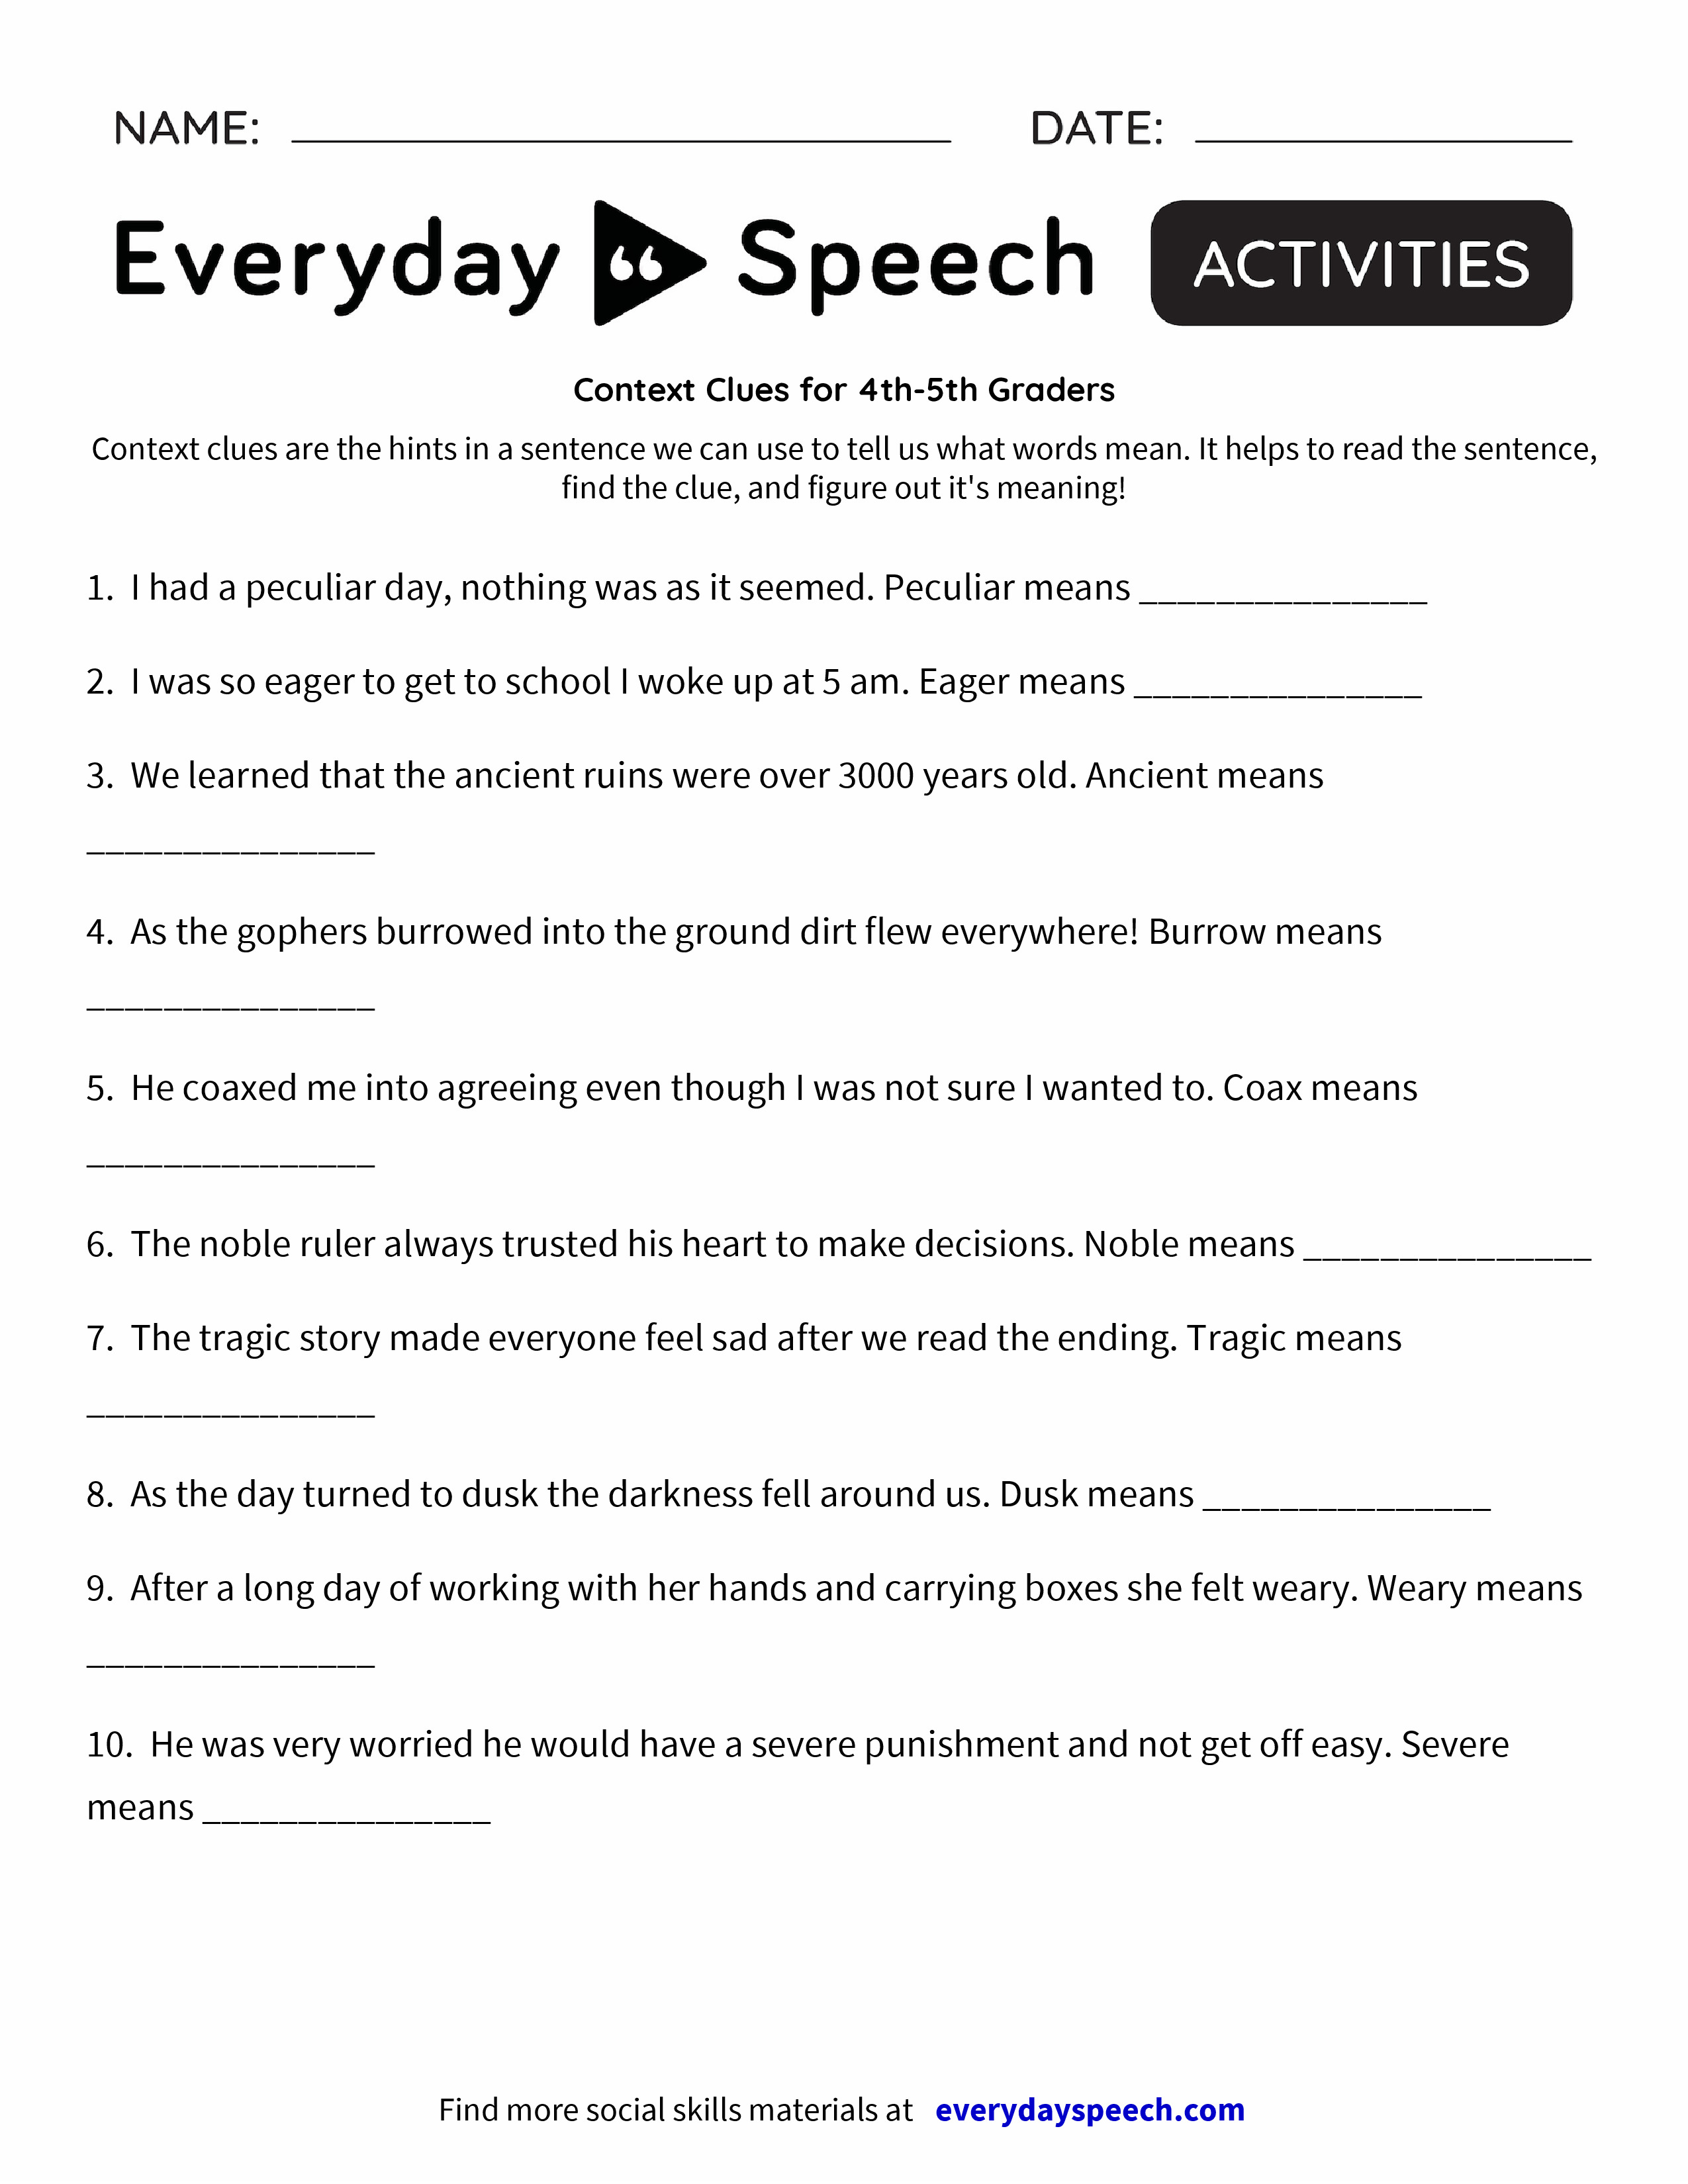 Worksheets  Context Clues for 4th-5th Graders - Everyday Speech - Everyday